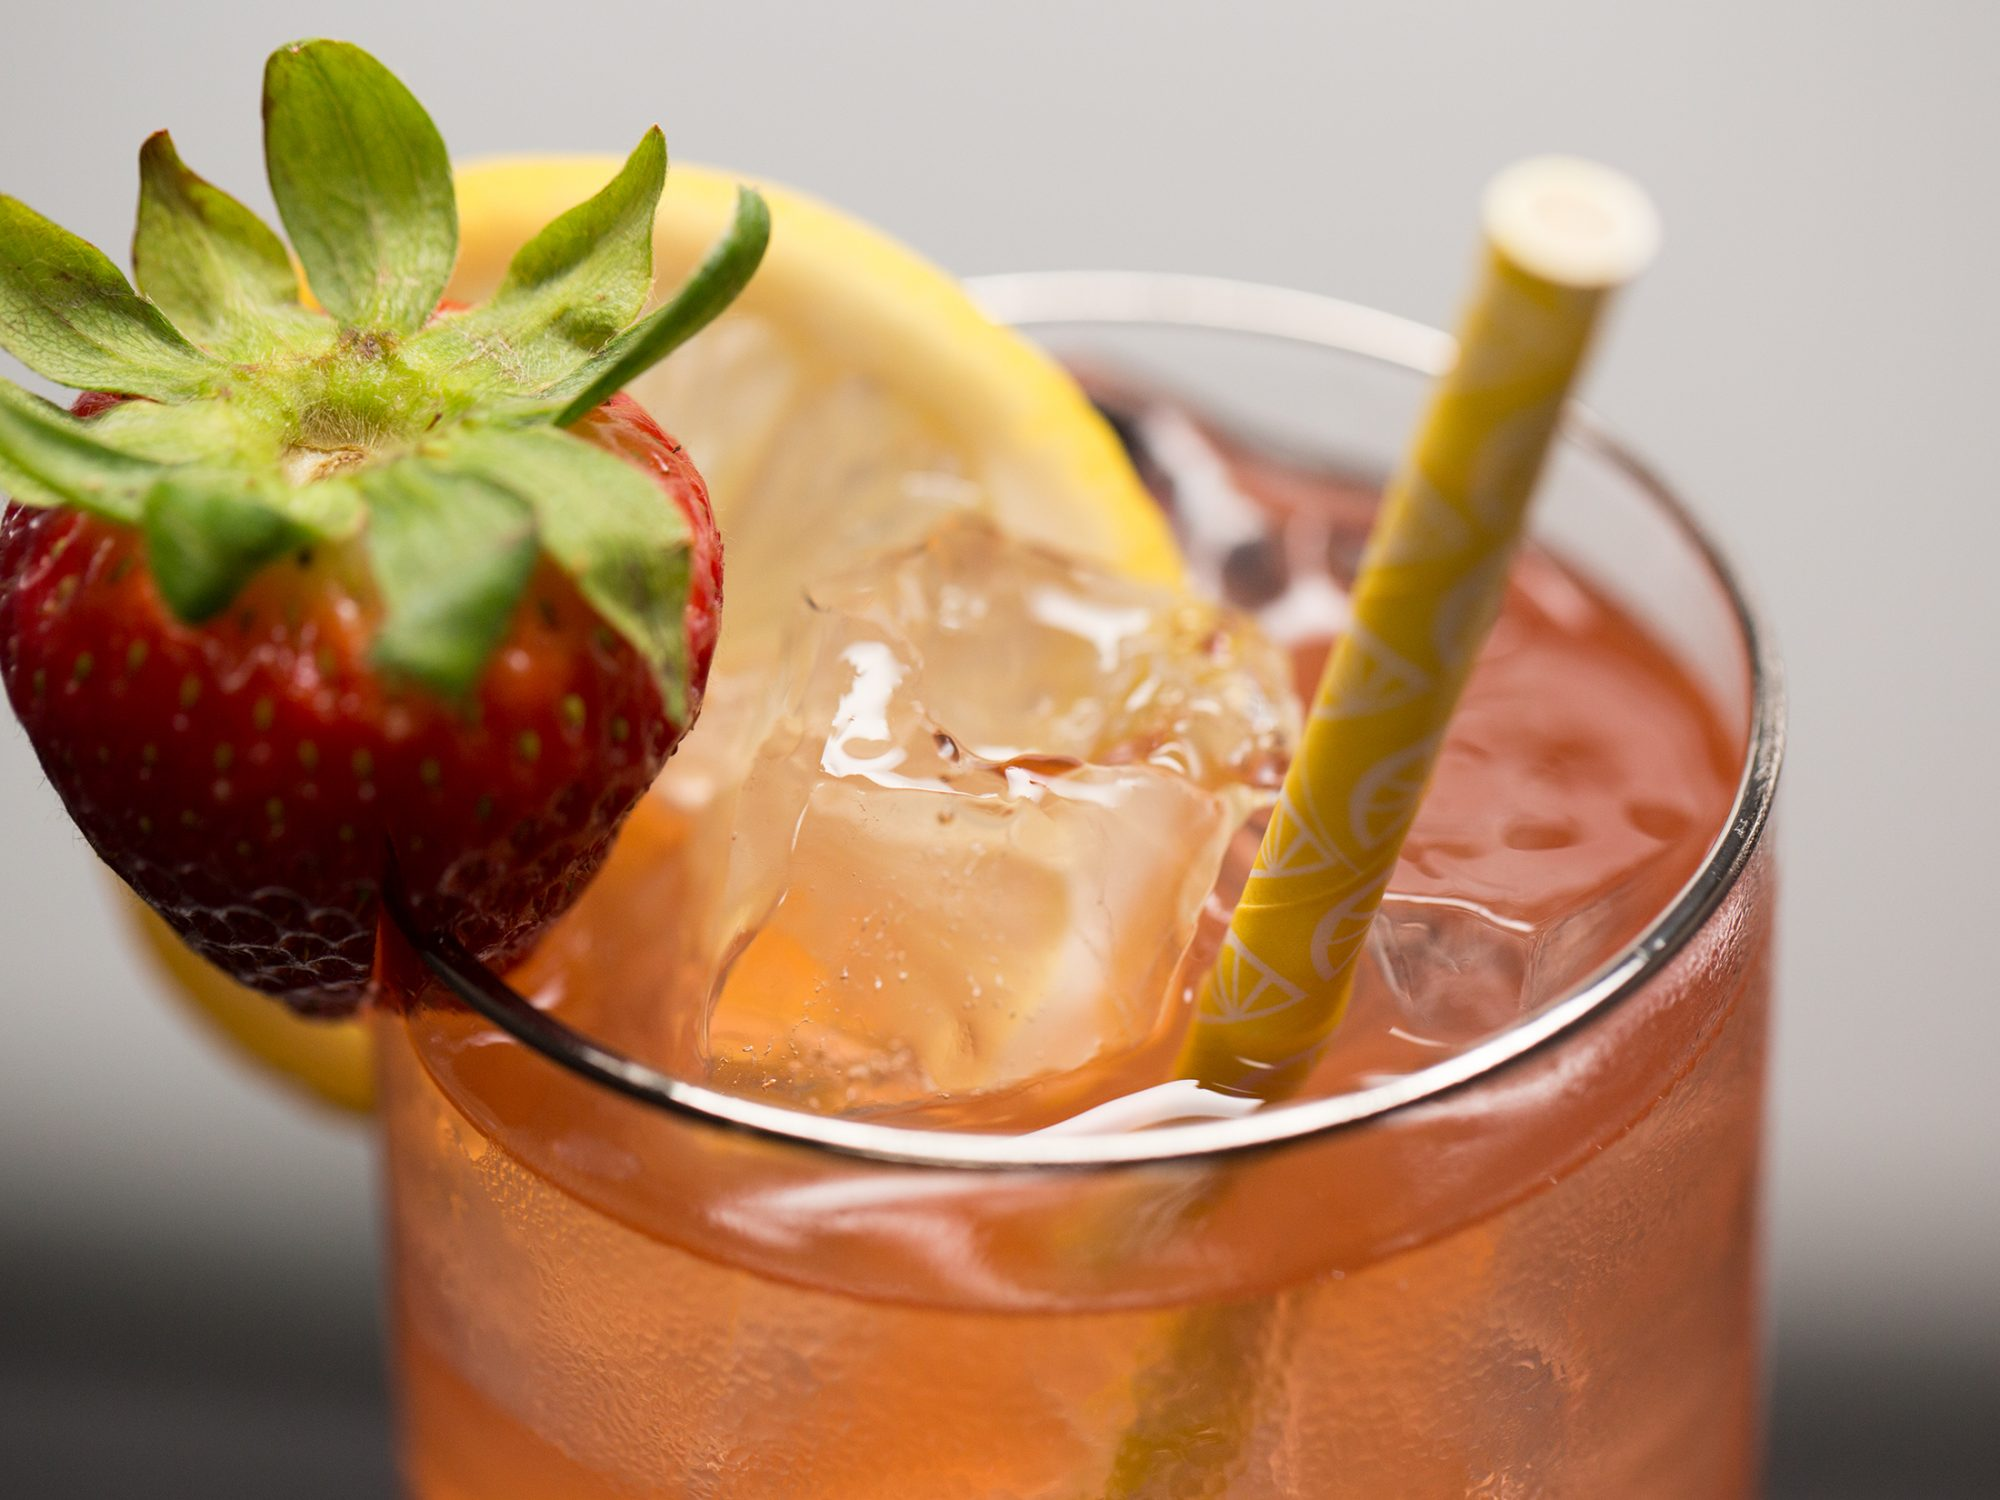 Skinny Strawberry Vodka Lemonade